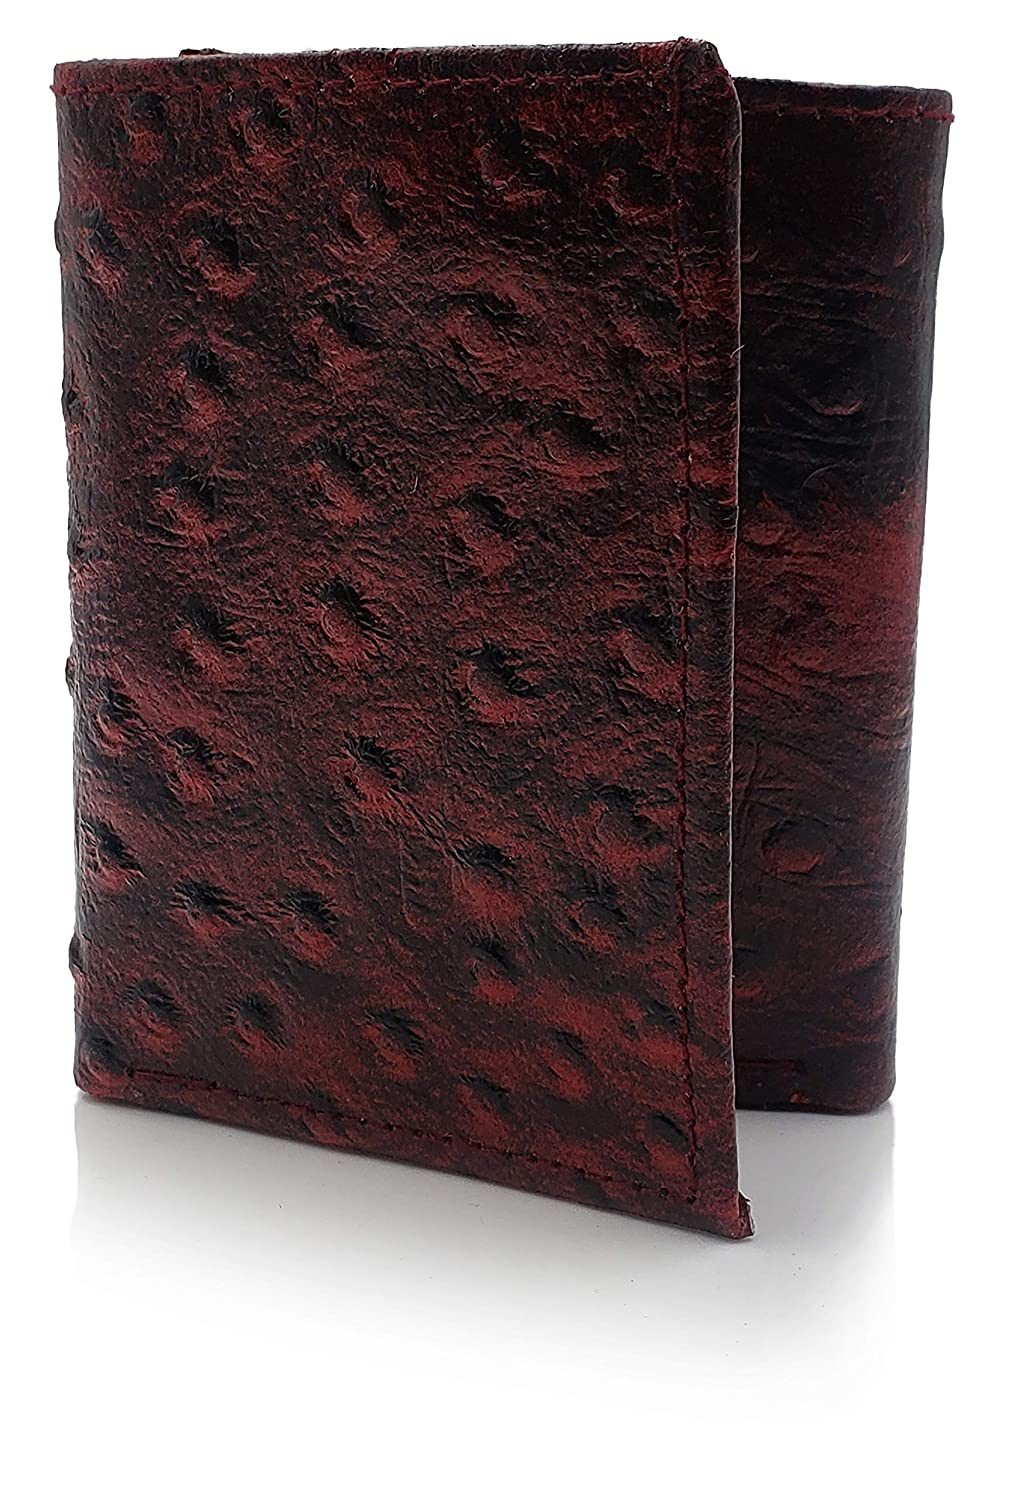 AG Wallets Genuine Leather Mens Ostrich Skin Embossed Trifold Wallet